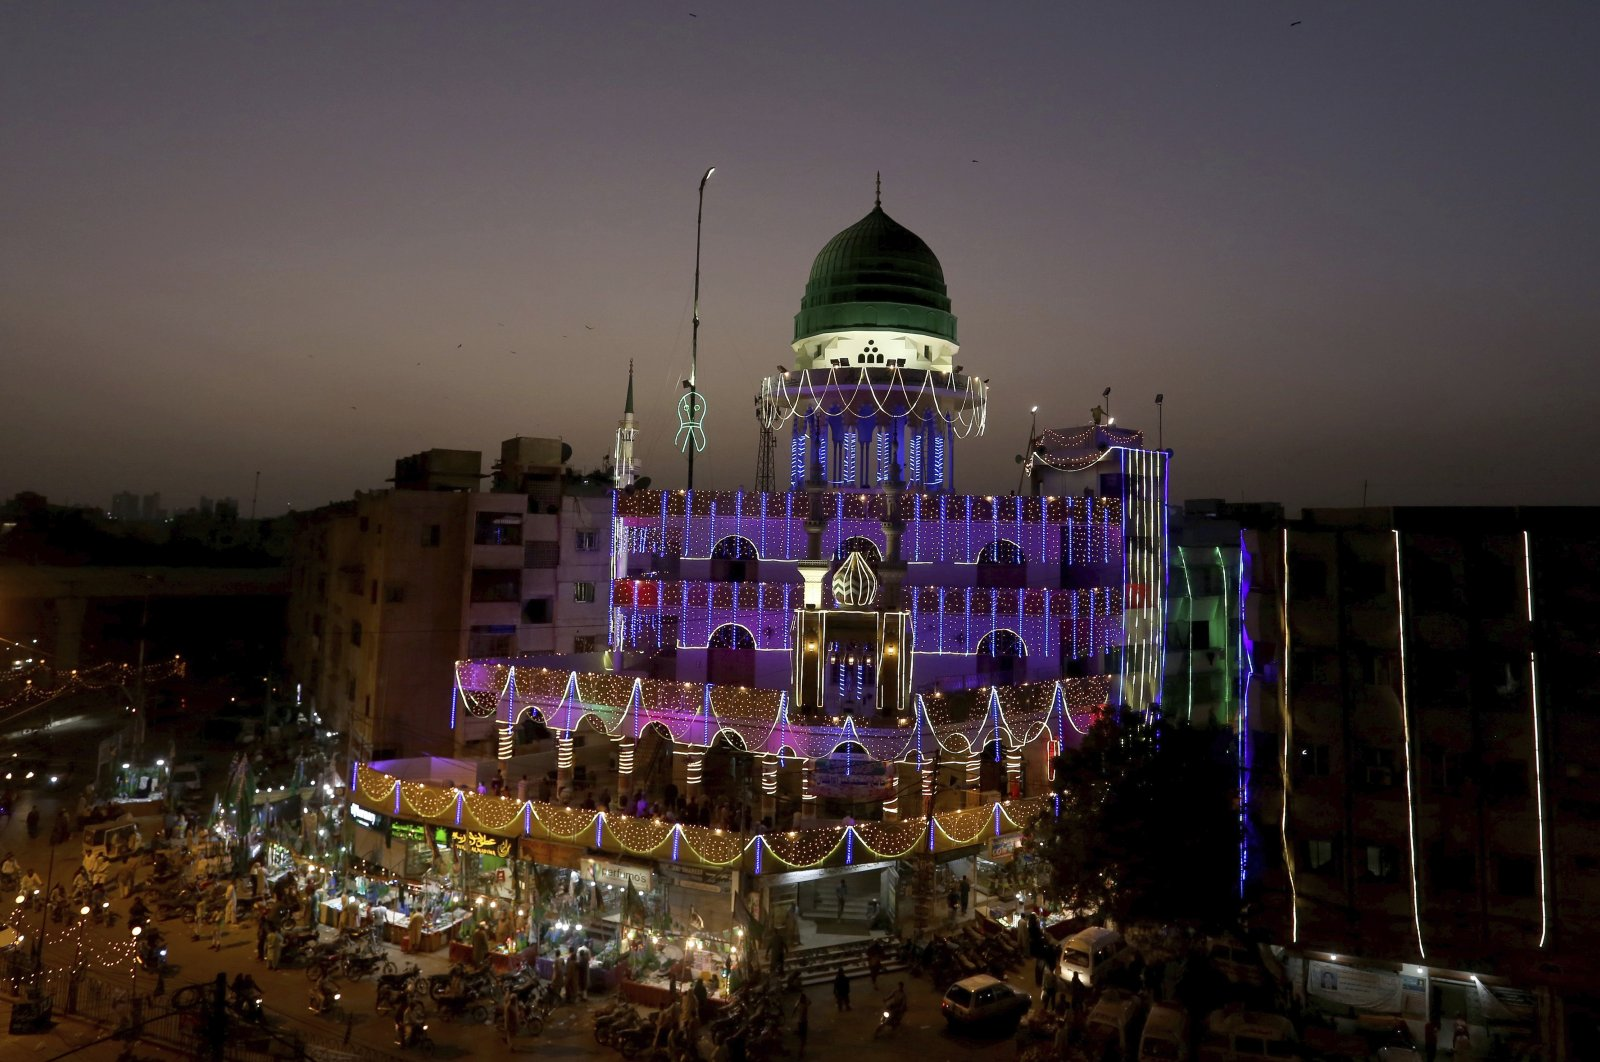 A mosque is decorated with lights for the Mawlid an-Nabi holiday celebrating the birthday of the Prophet Muhammad, in Karachi, Pakistan, Oct. 25, 2020. (AP Photo)